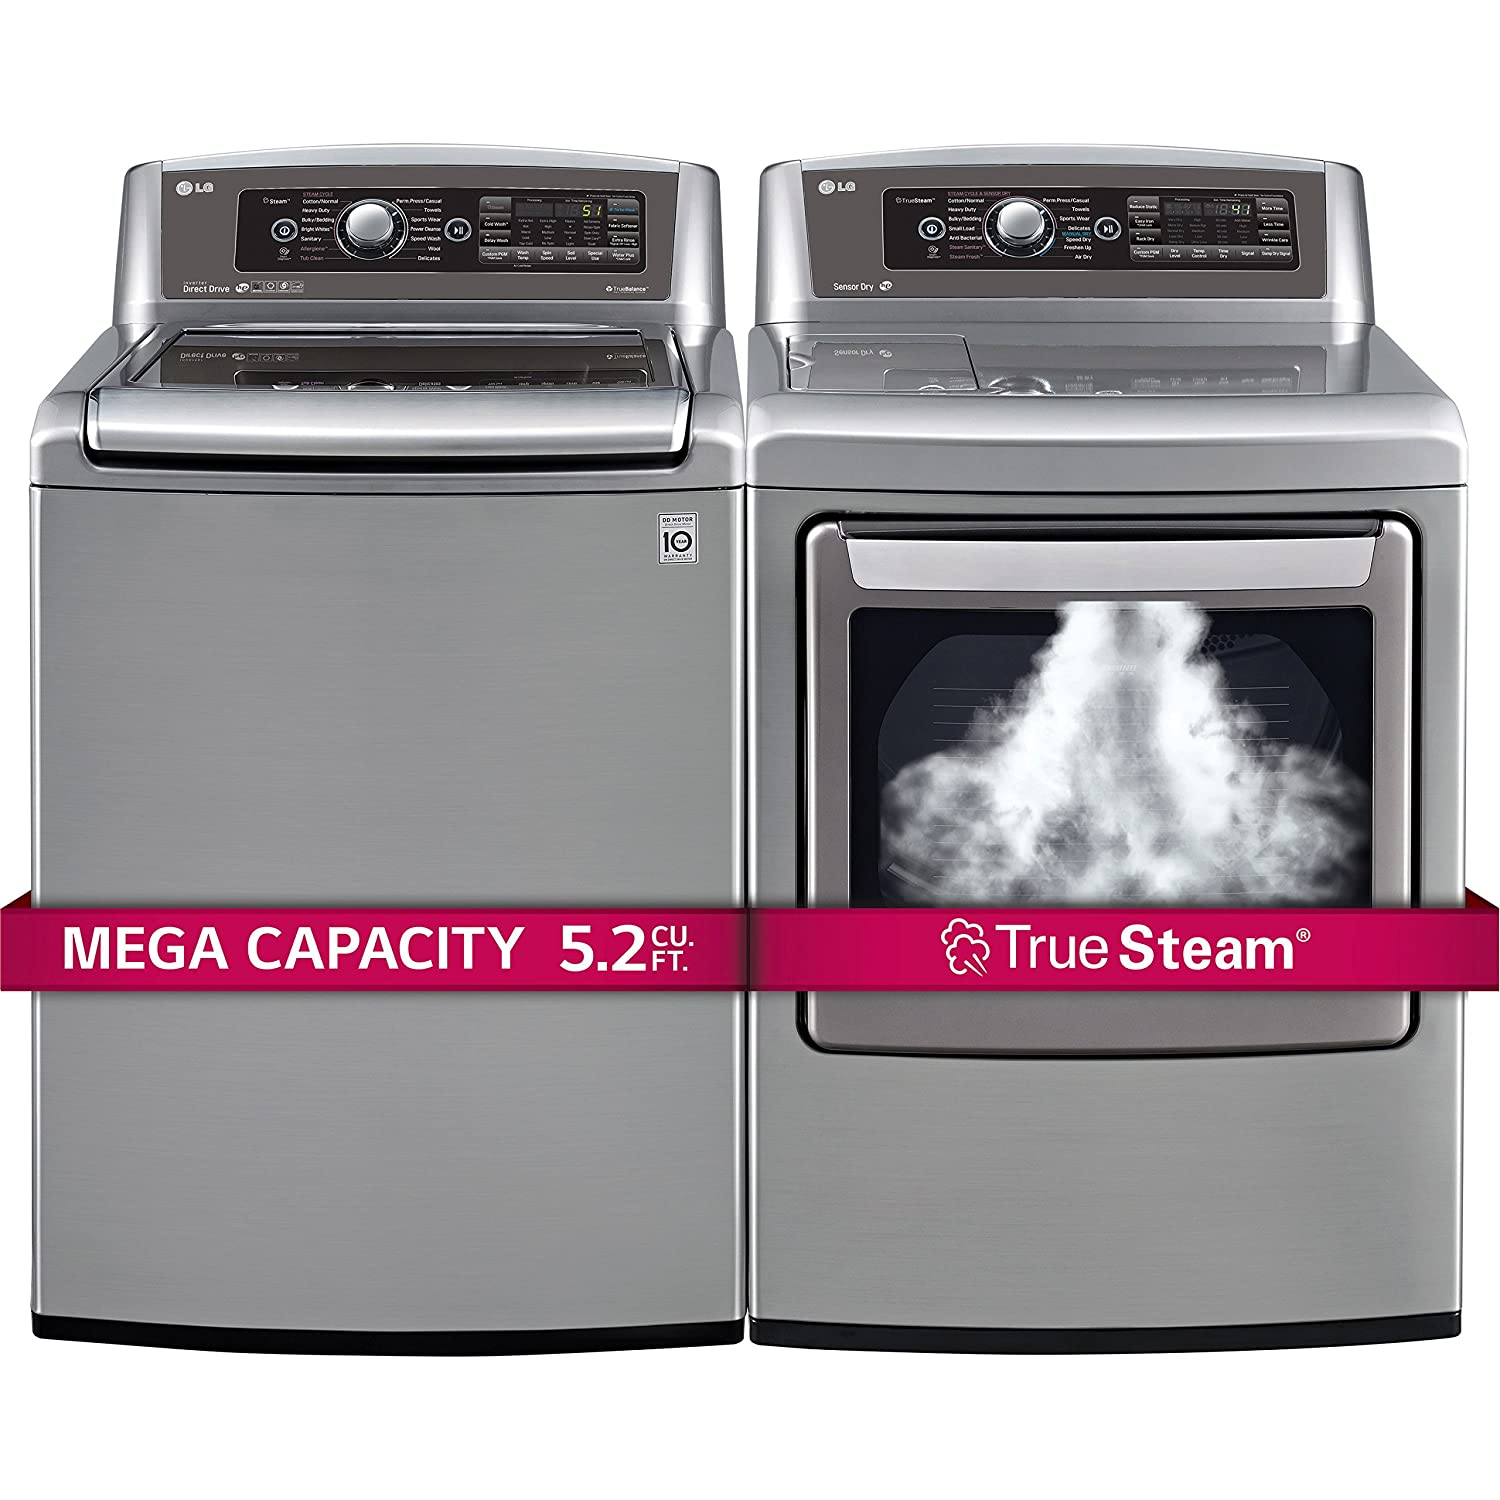 LG H/E Mega Capacity Top Load Laundry System with Turbo Wash Technology and Innovative Easy Load ELECTRIC Dryer (WT5680HVA_DLEX5780VE) *Graphite Steel*